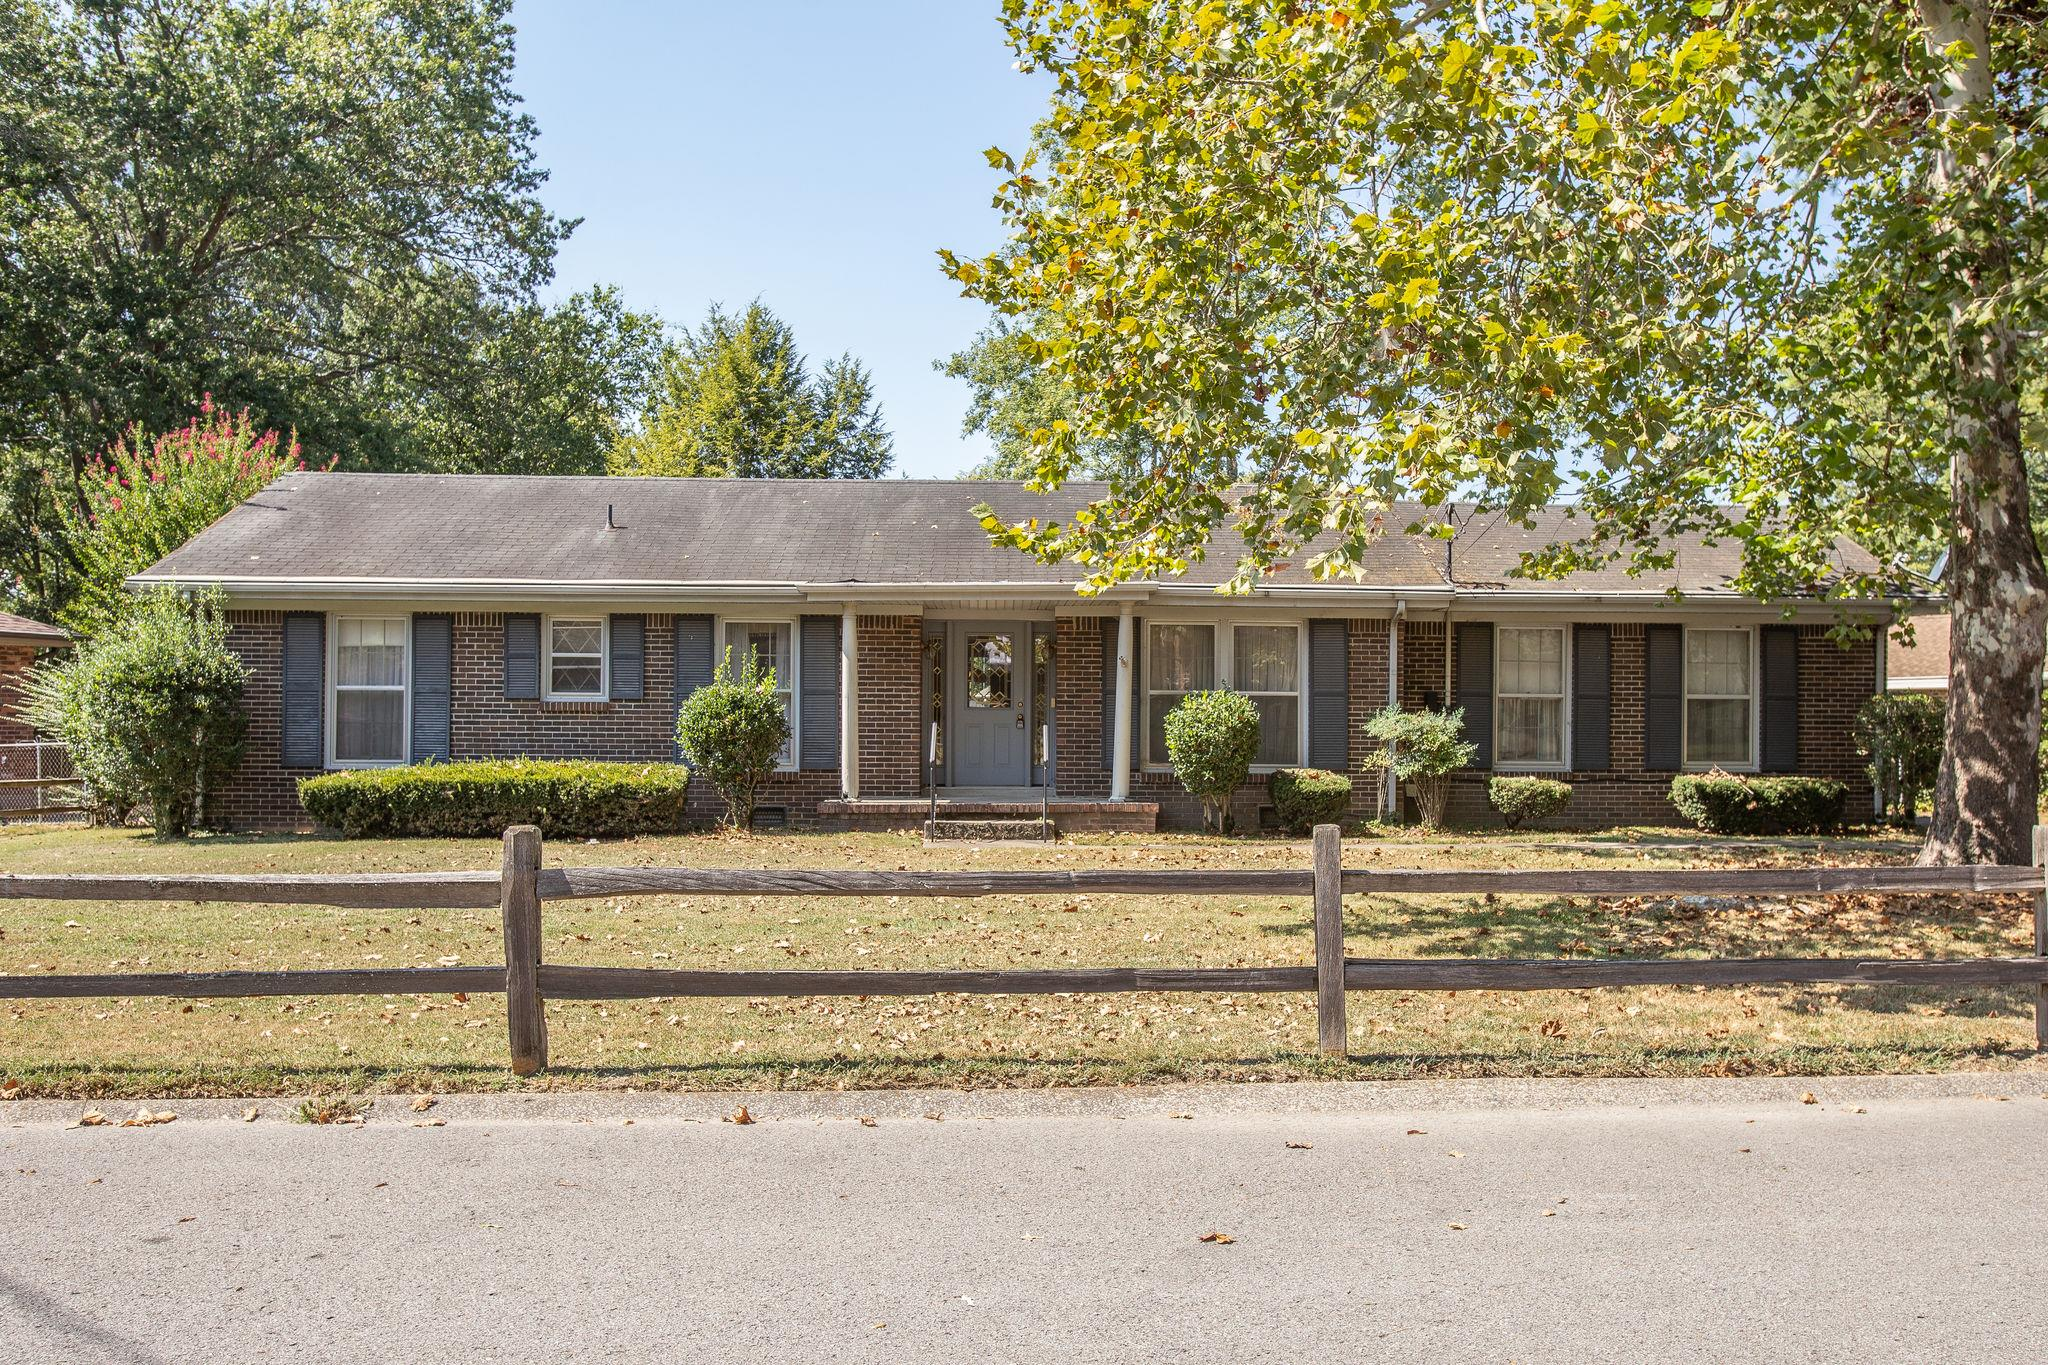 8008 Stallion Ct., Bellevue in Davidson County County, TN 37221 Home for Sale